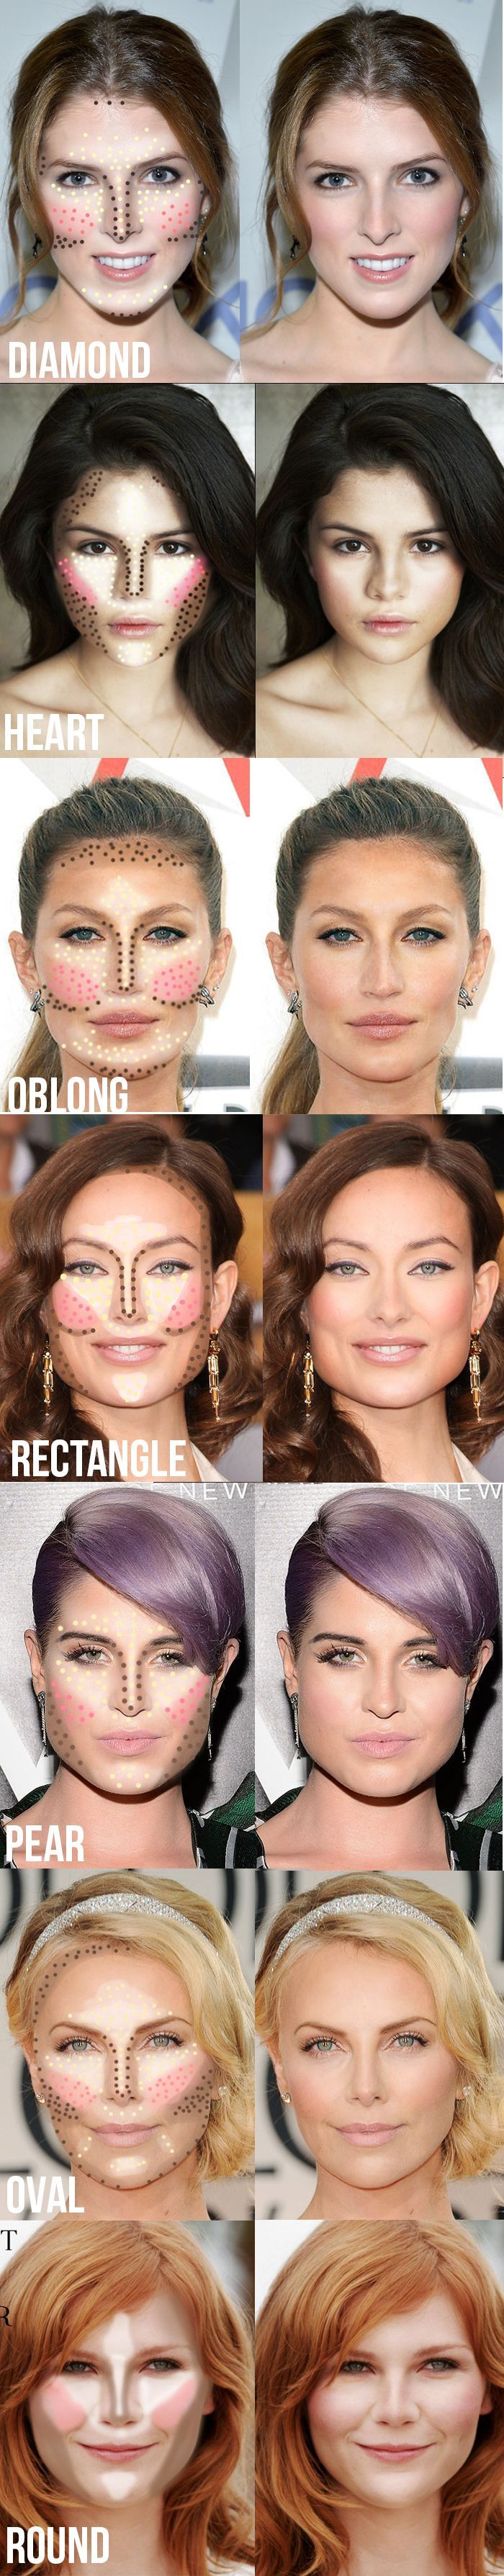 medium resolution of face contouring diagram by face shape